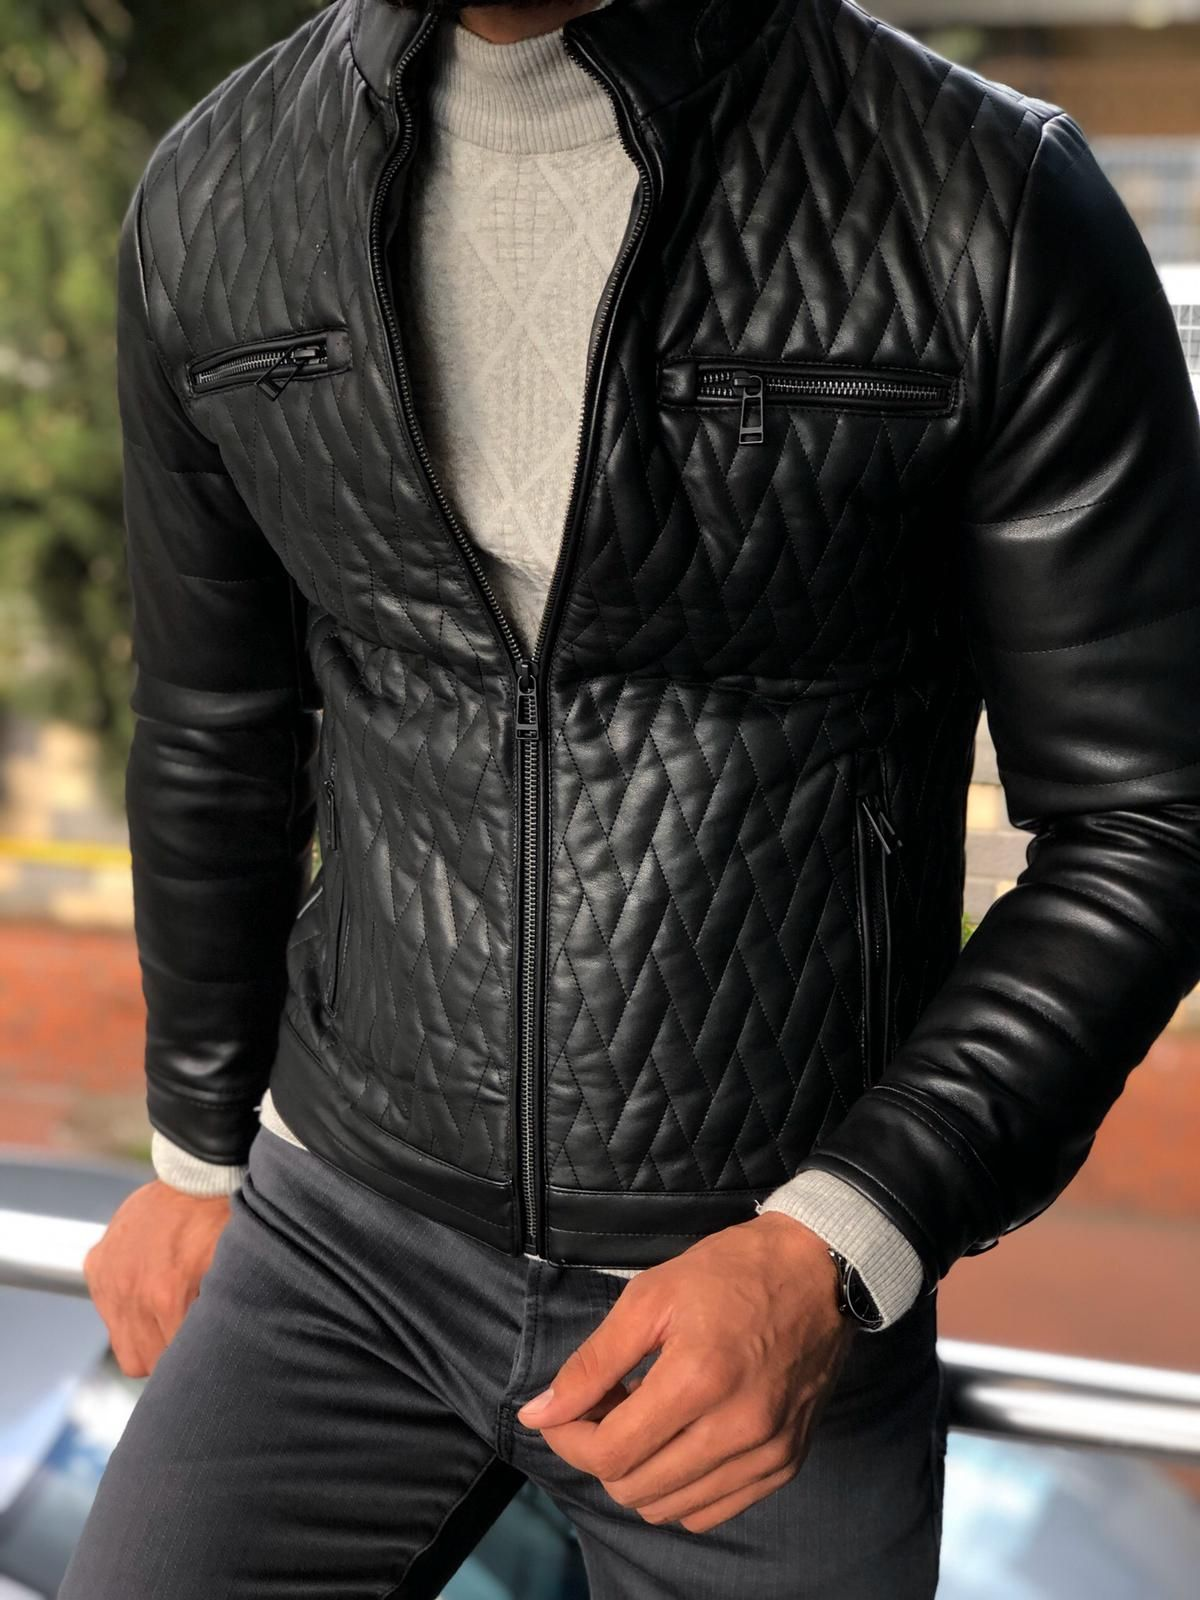 Gentwith Fabros Black Slim Fit Patterned Coat Gent With Coat Patterns Leather Jacket Men Men S Coats And Jackets [ 1600 x 1200 Pixel ]